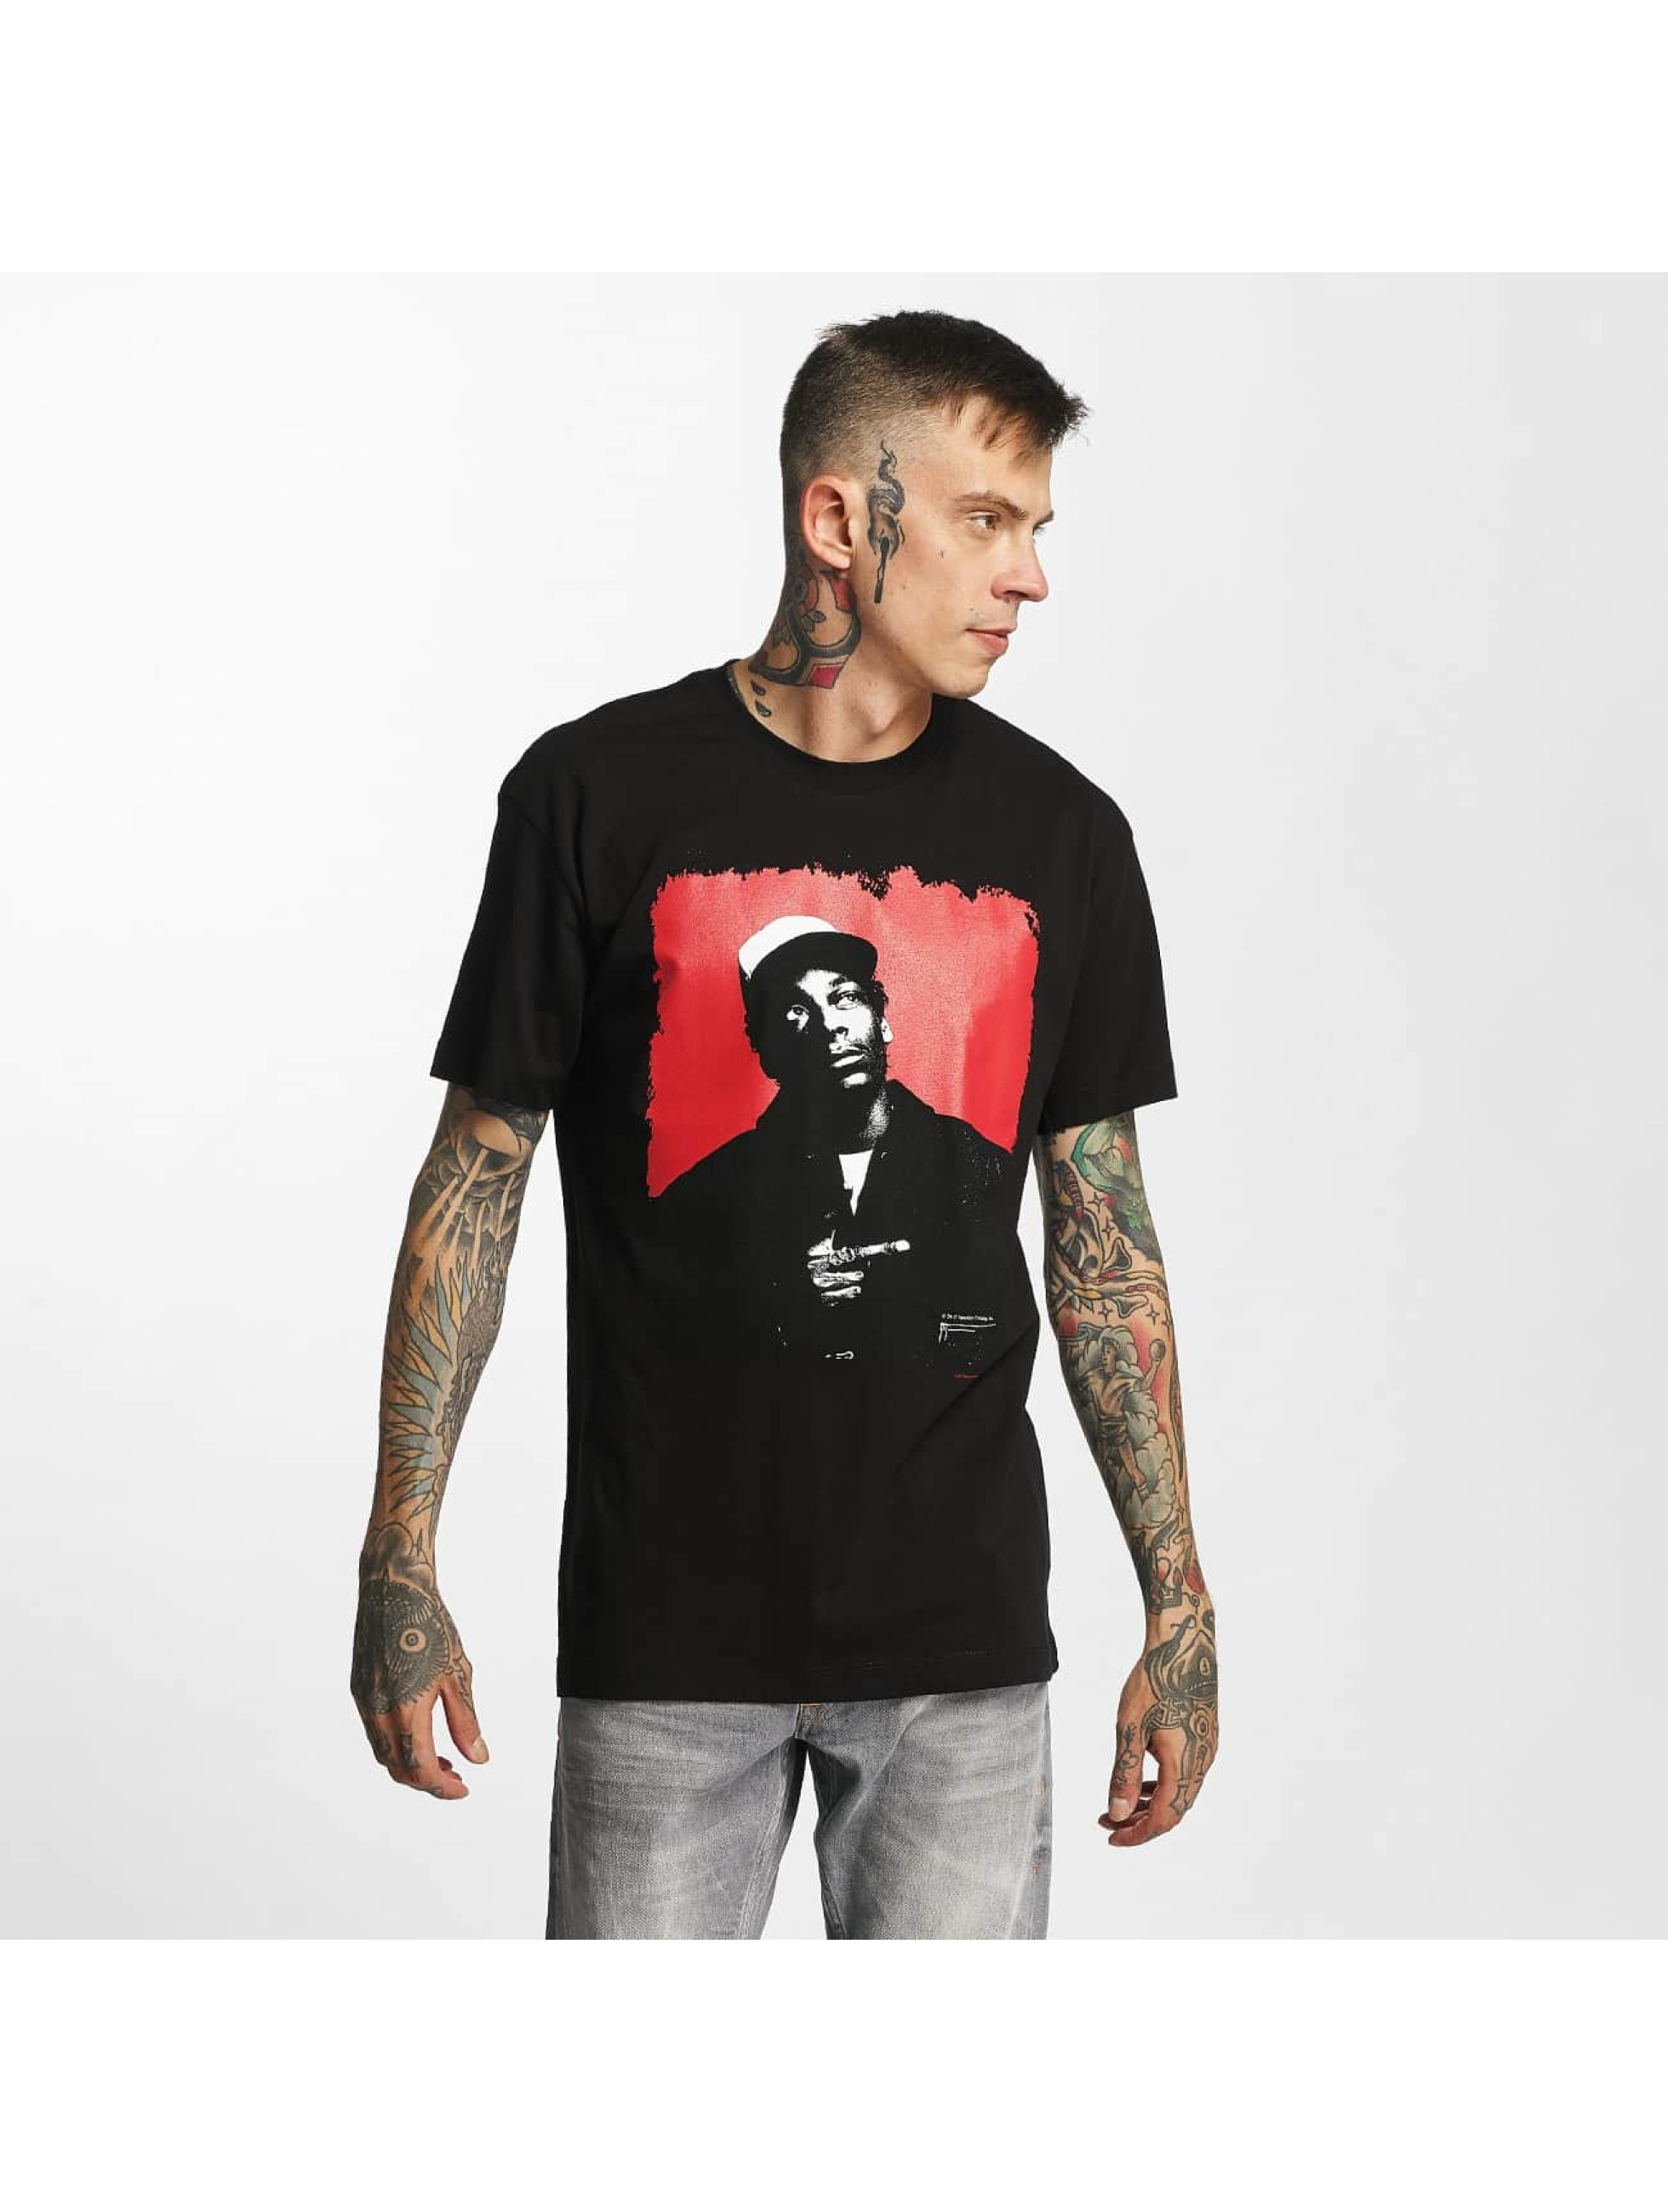 Amplified Männer T-Shirt Snoop Dogg - Red Square in schwarz